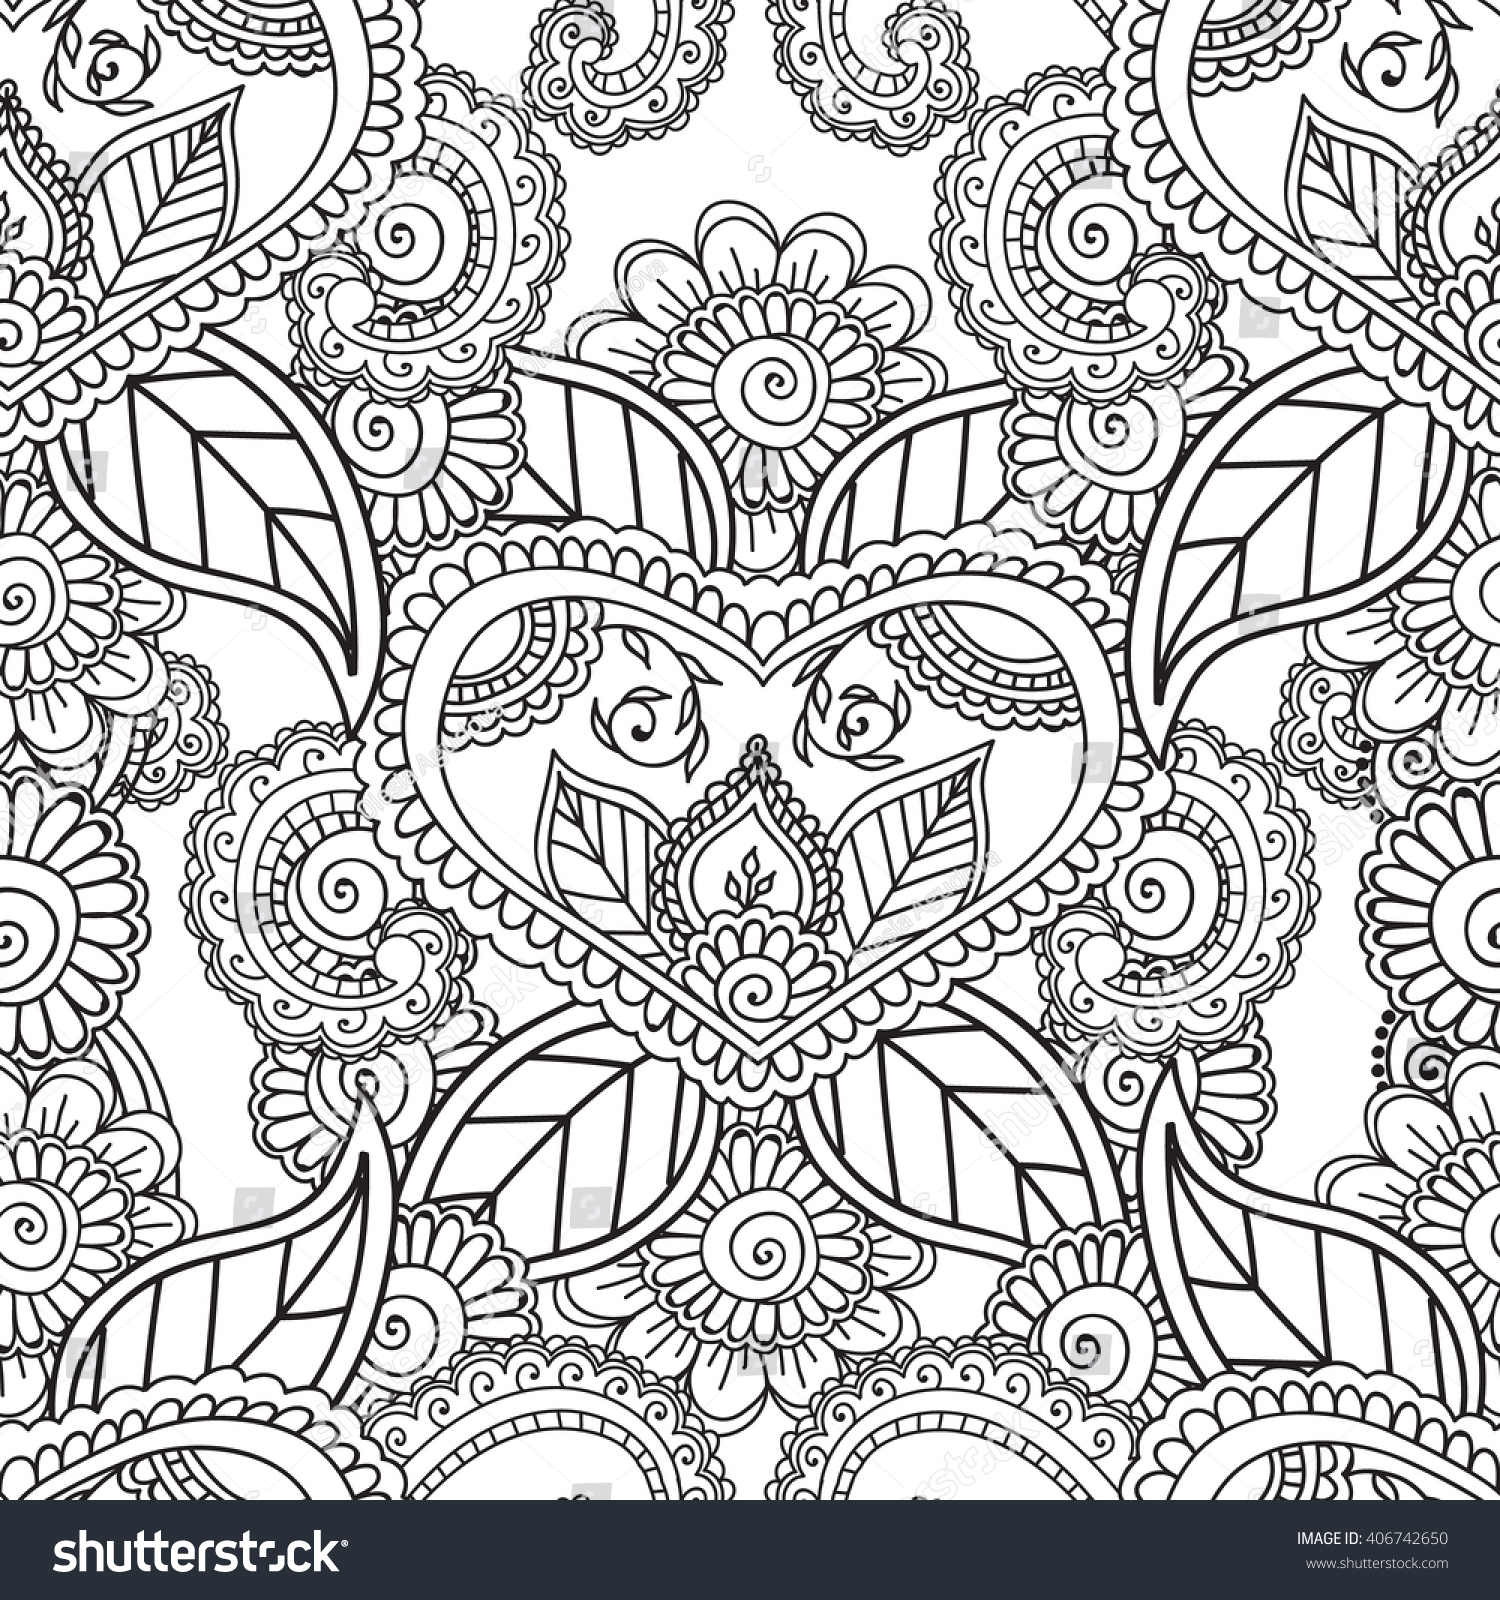 coloring pages adults seamless patternhenna mehndi stock vector 406742650 shutterstock - Coloring Pages For Adults Abstract